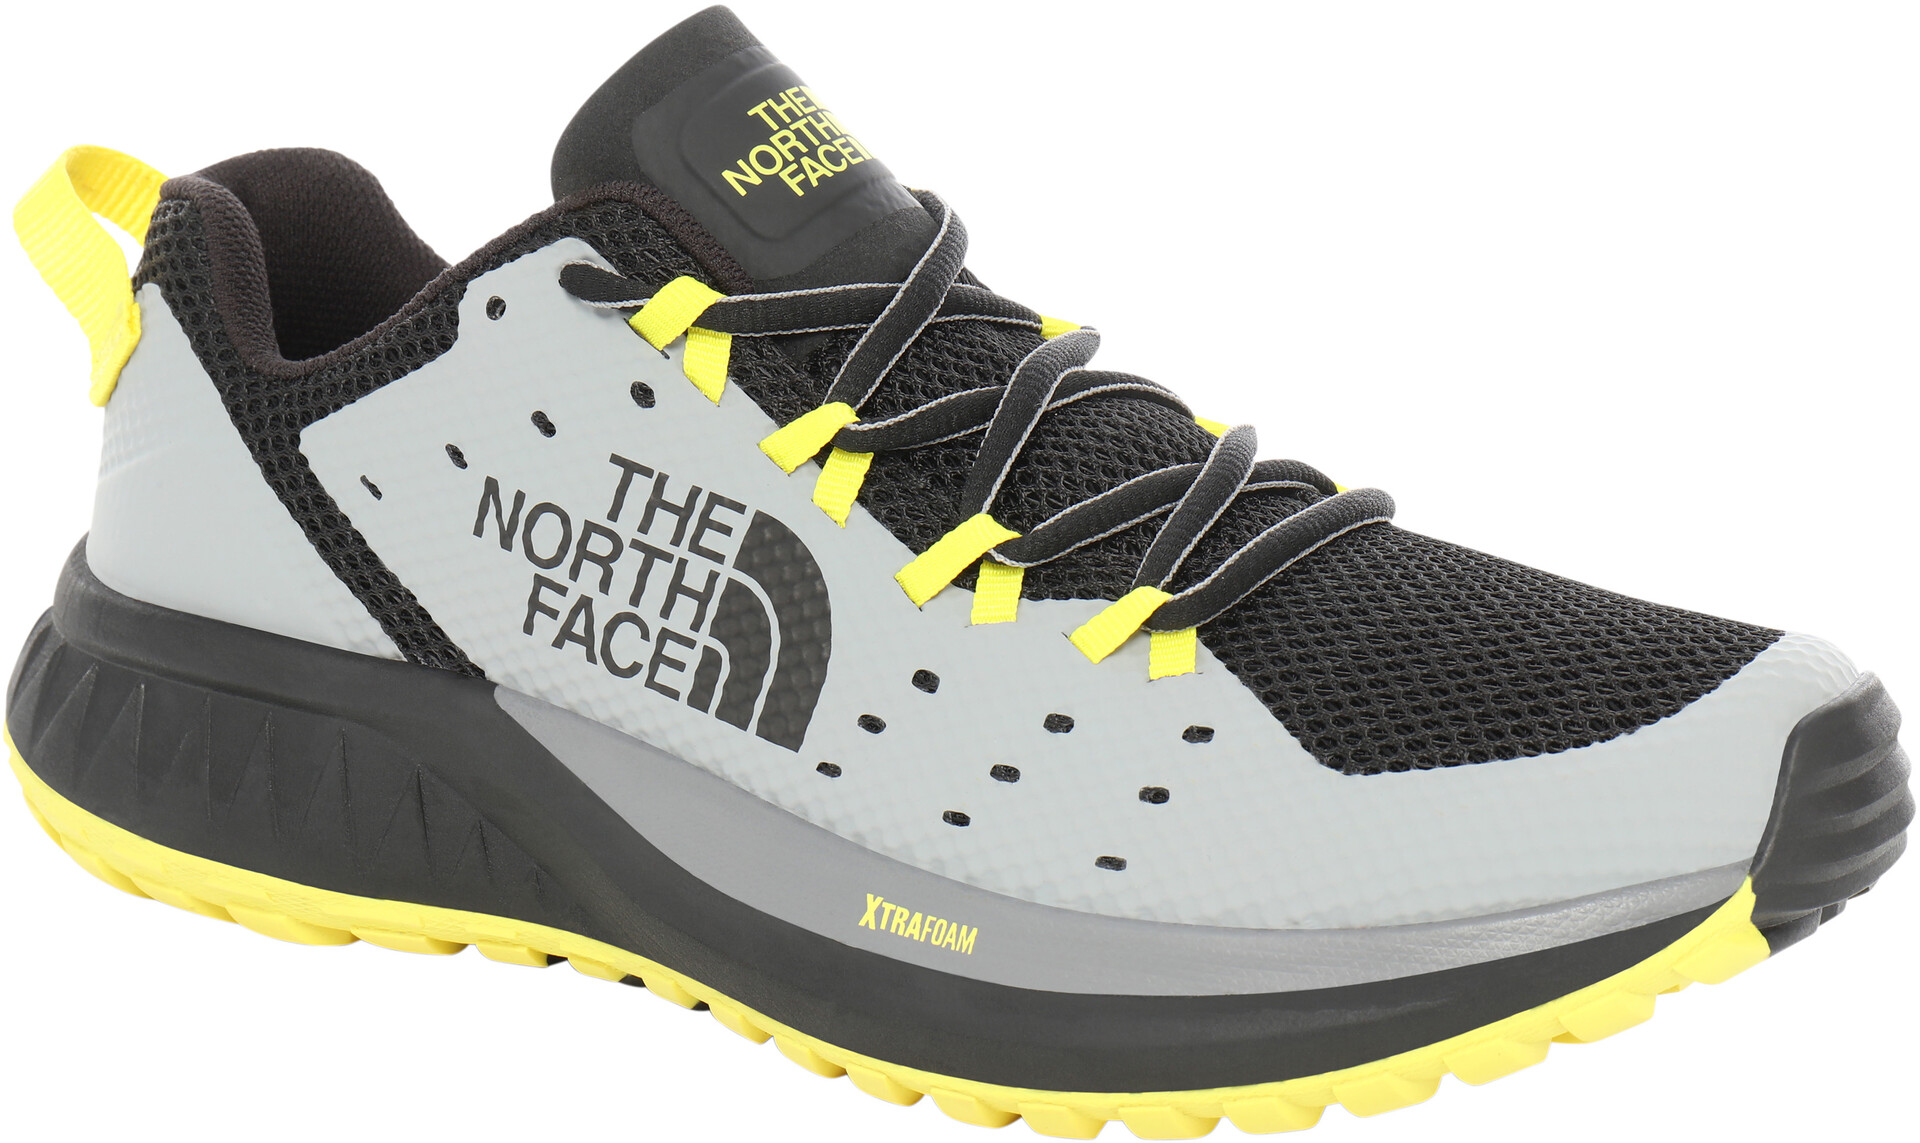 The North Face Ultra Endurance XF Shoes